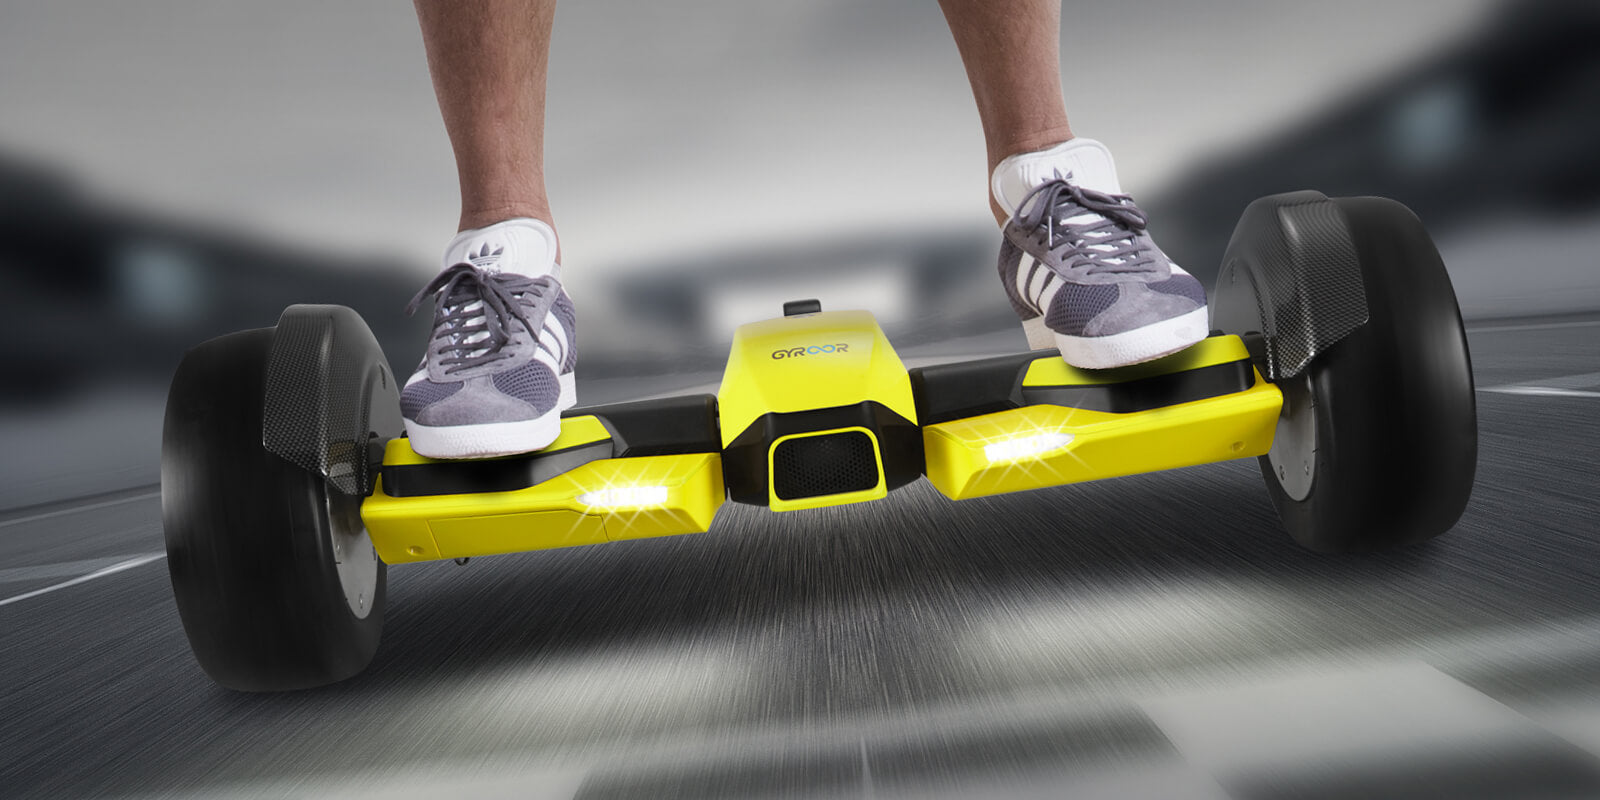 F1 racing hoverboard yellow